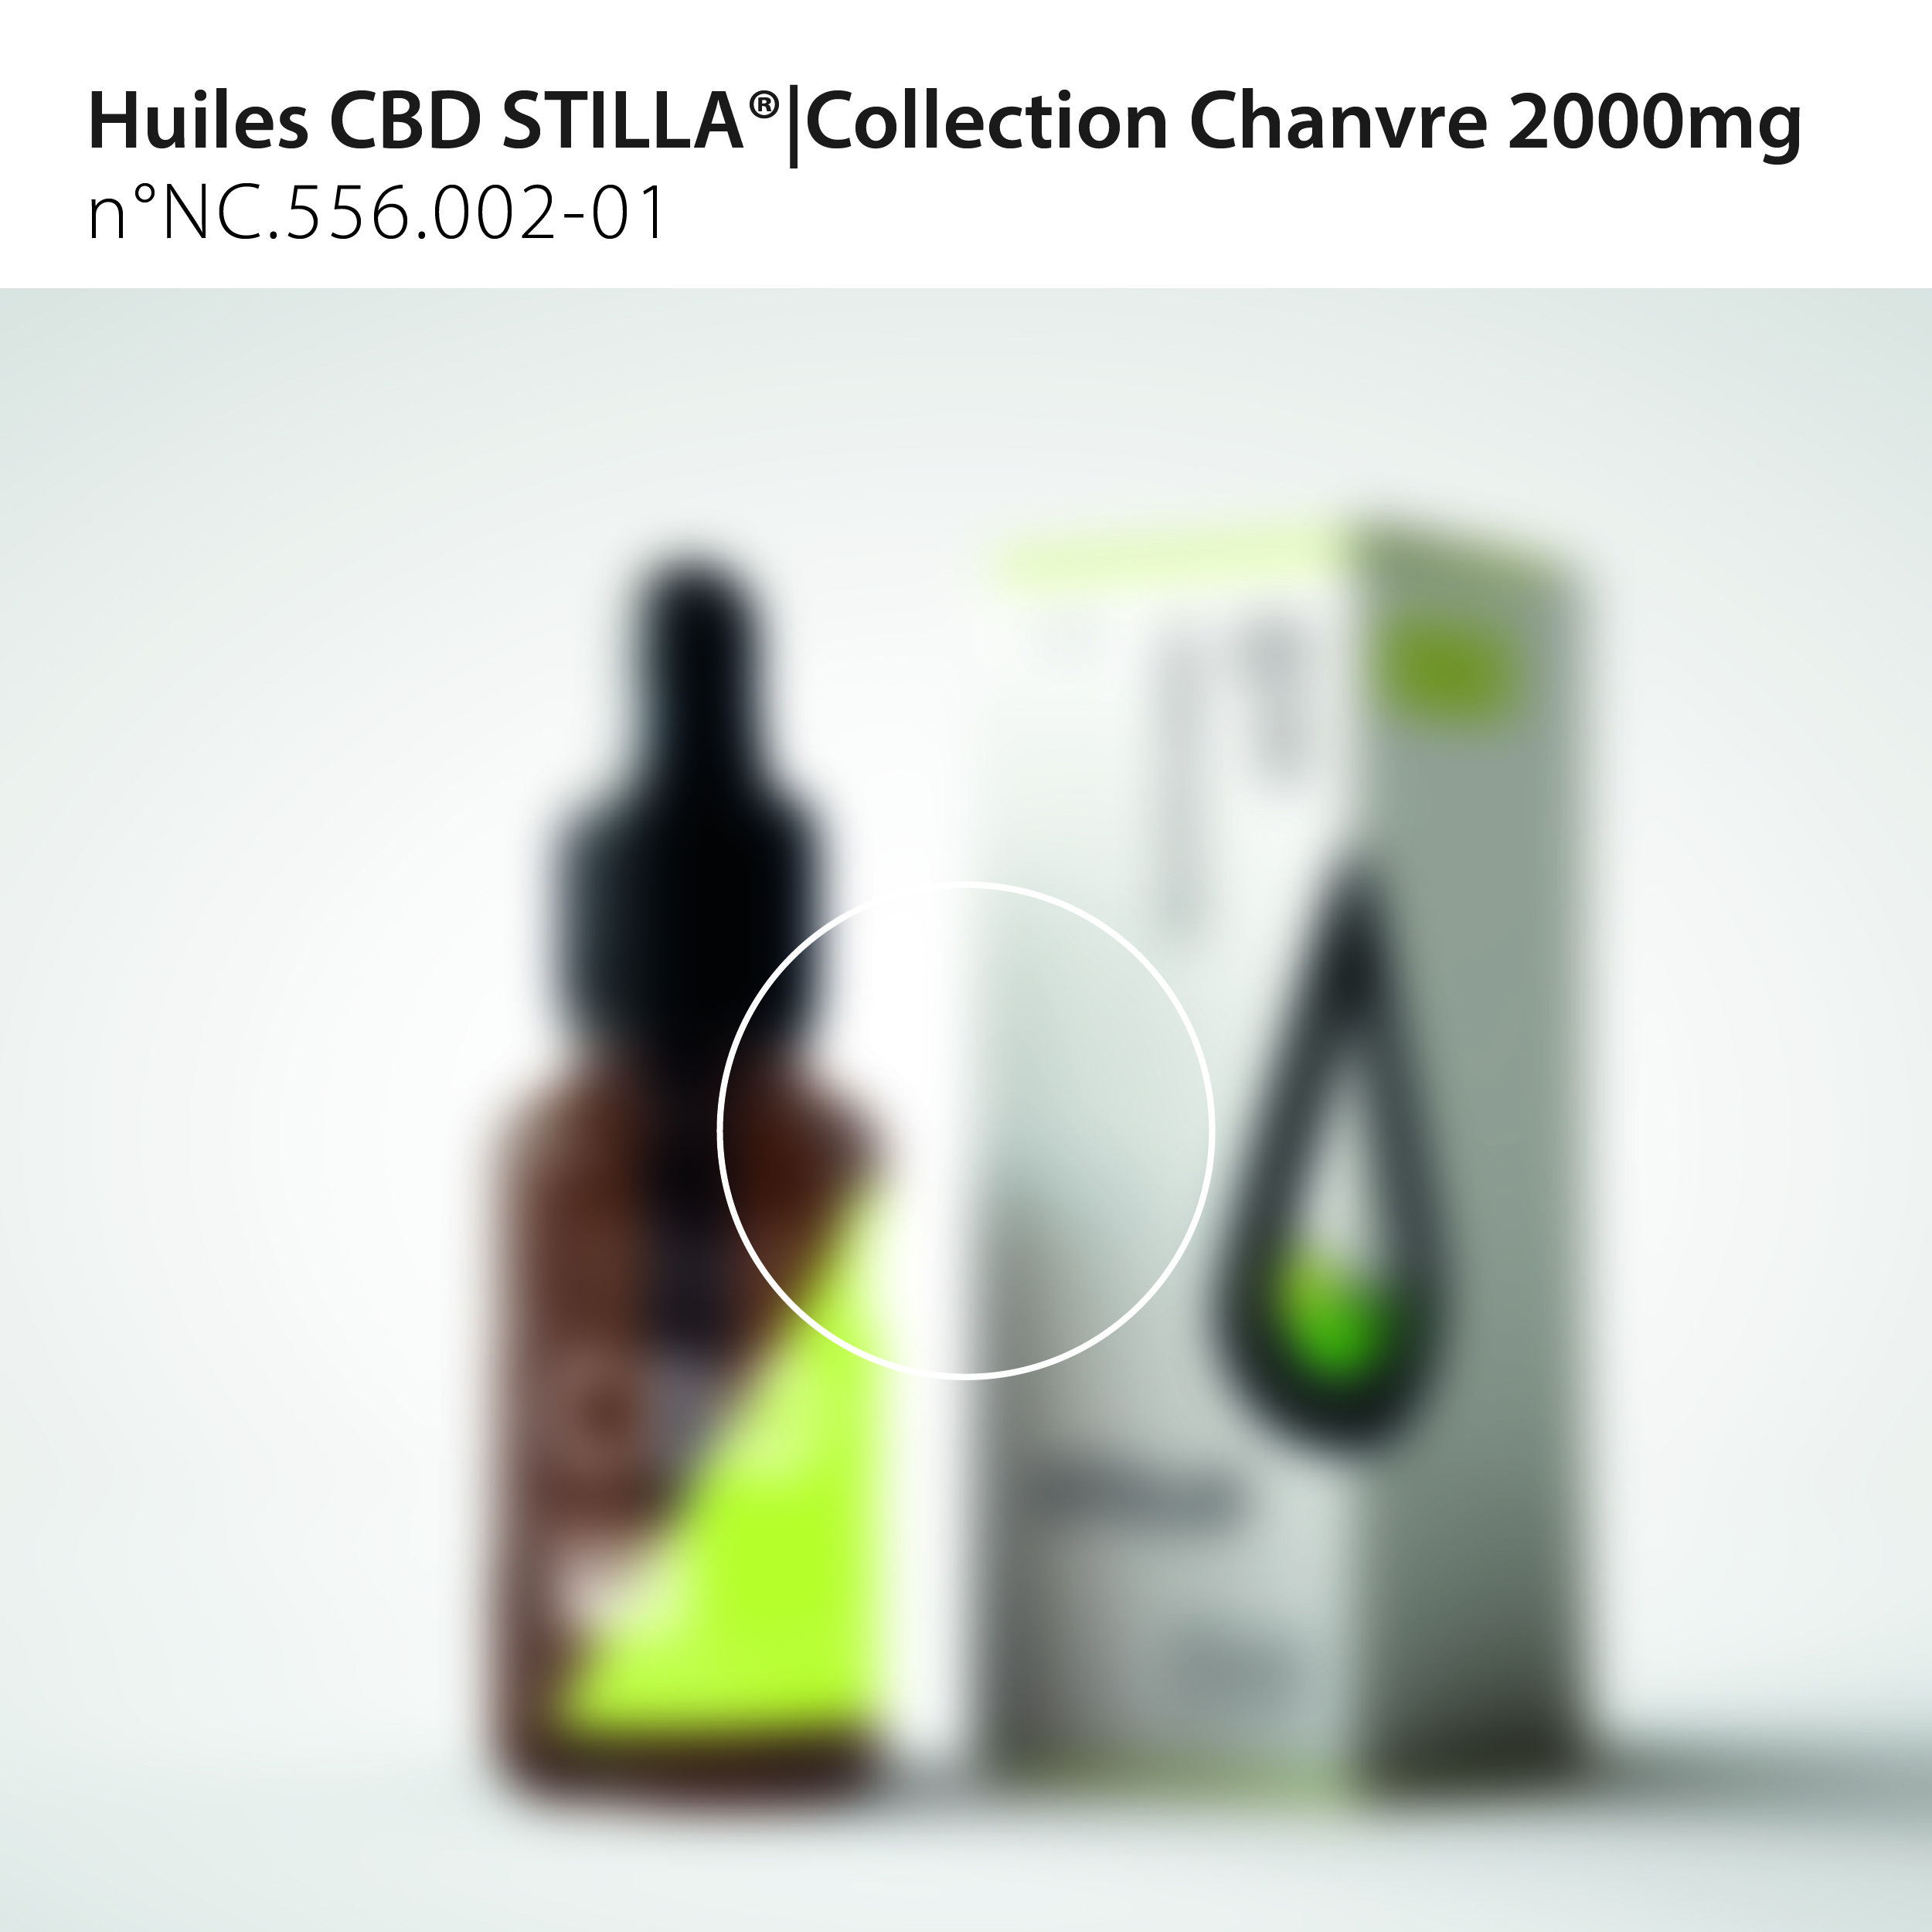 CHANVRE2000_Analyses1.jpg